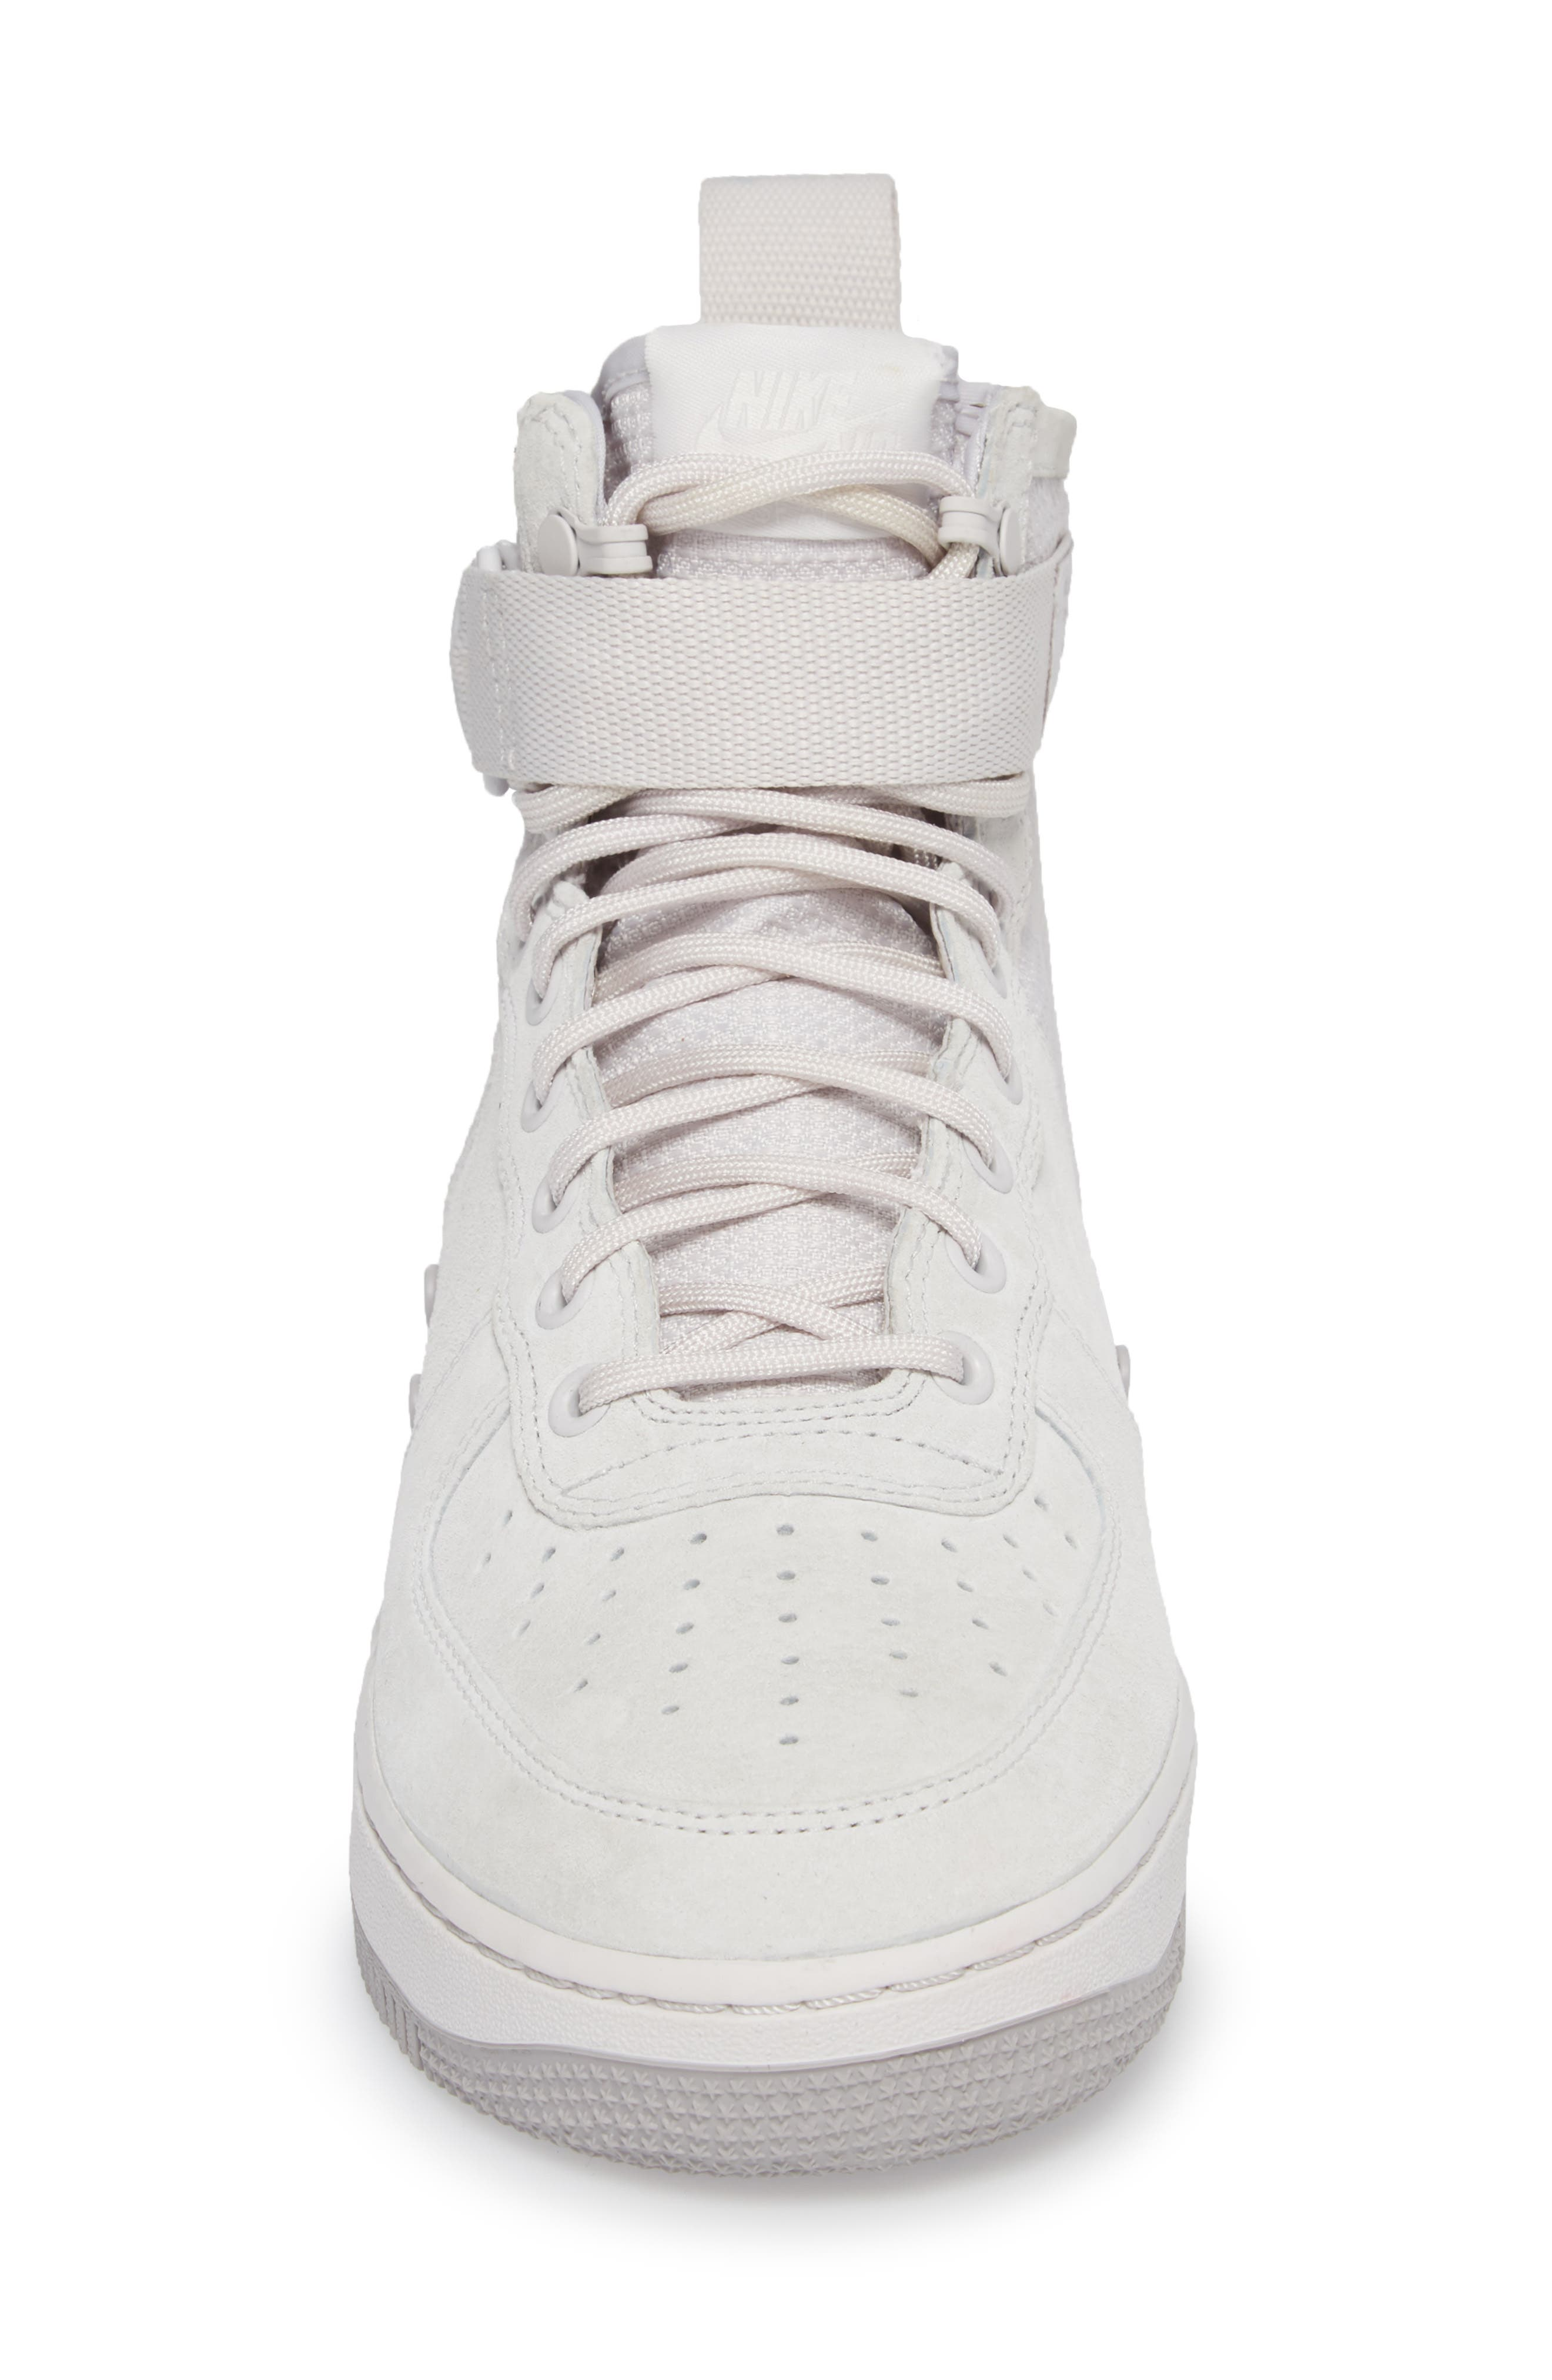 SF Air Force 1 Mid Suede Sneaker,                             Alternate thumbnail 4, color,                             021